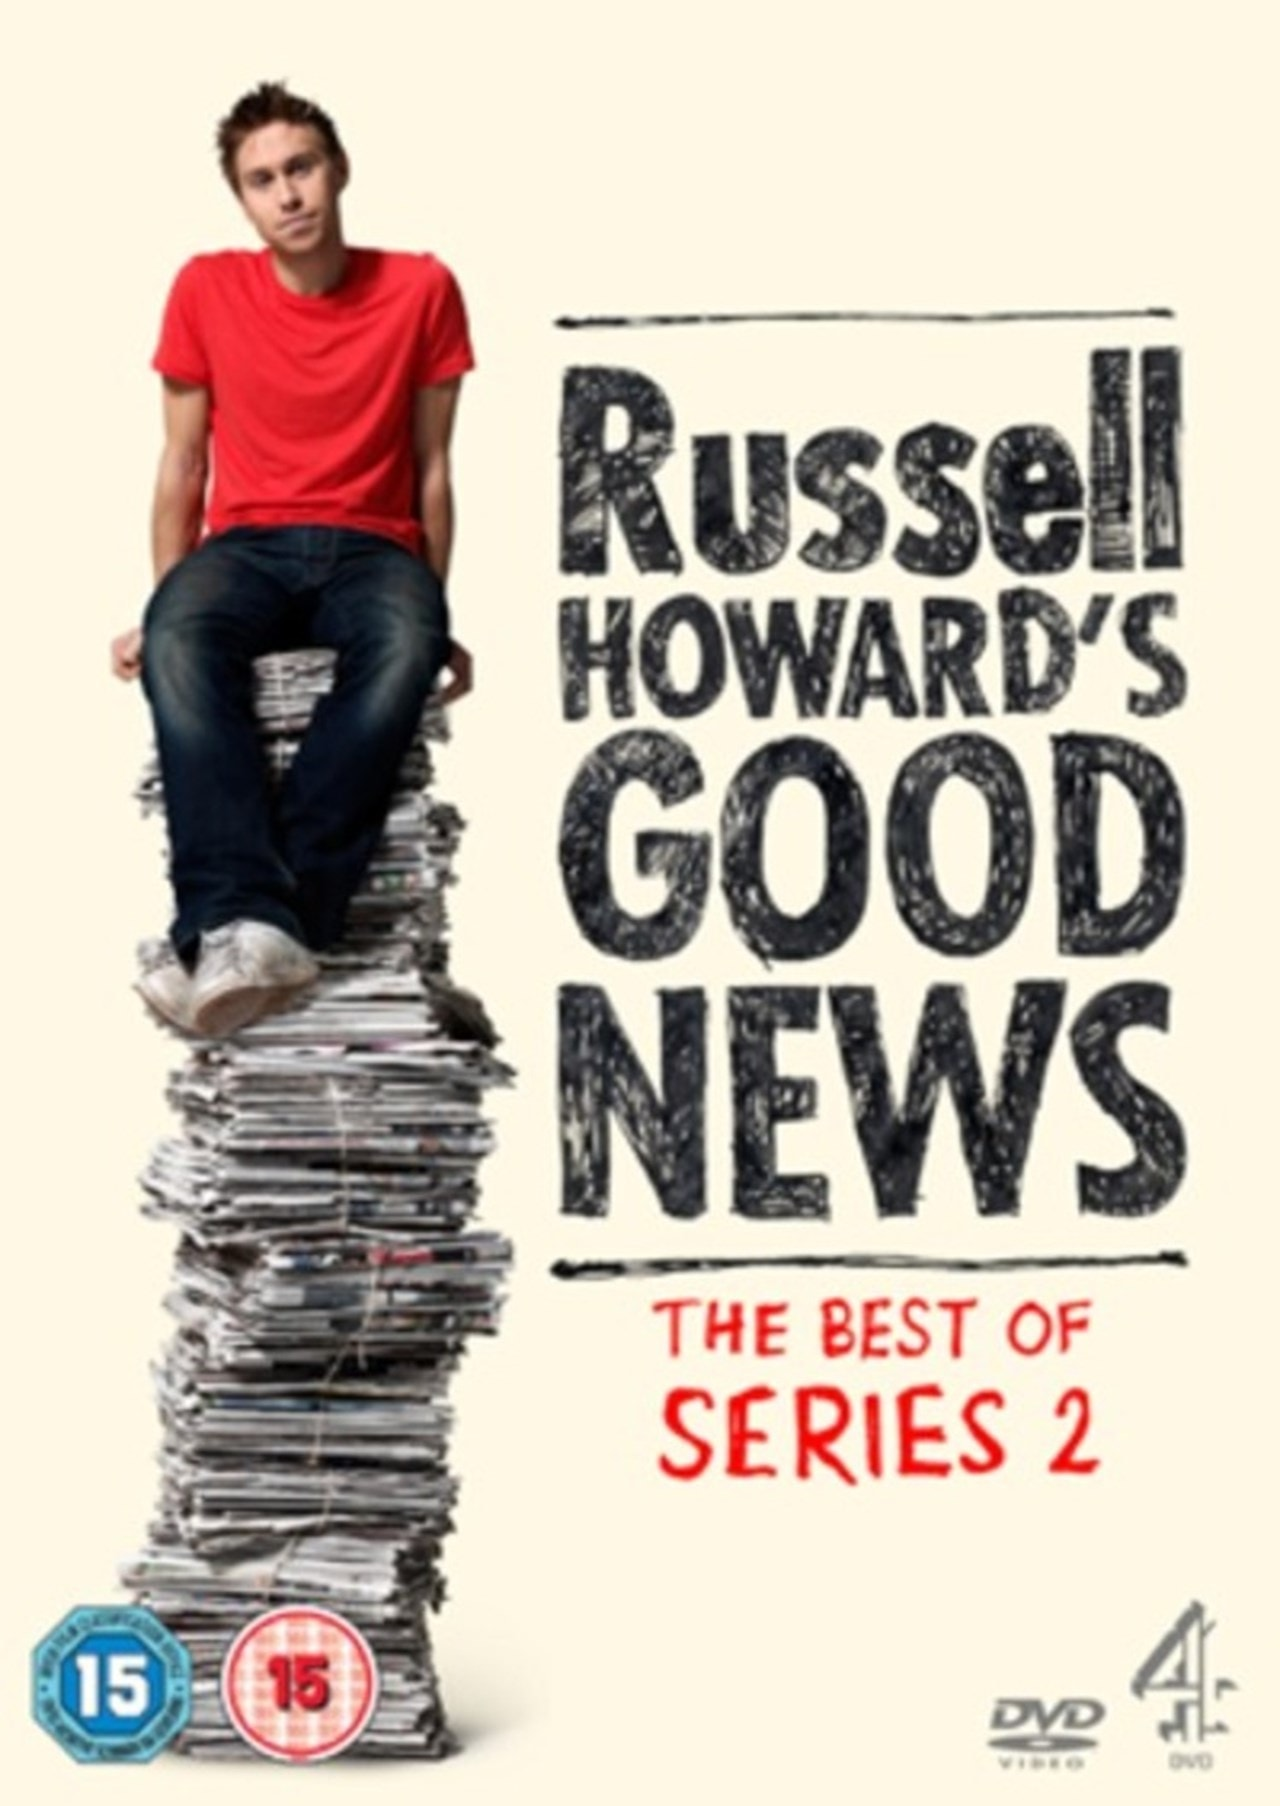 Russell Howard's Good News: Best of Series 2 - 1